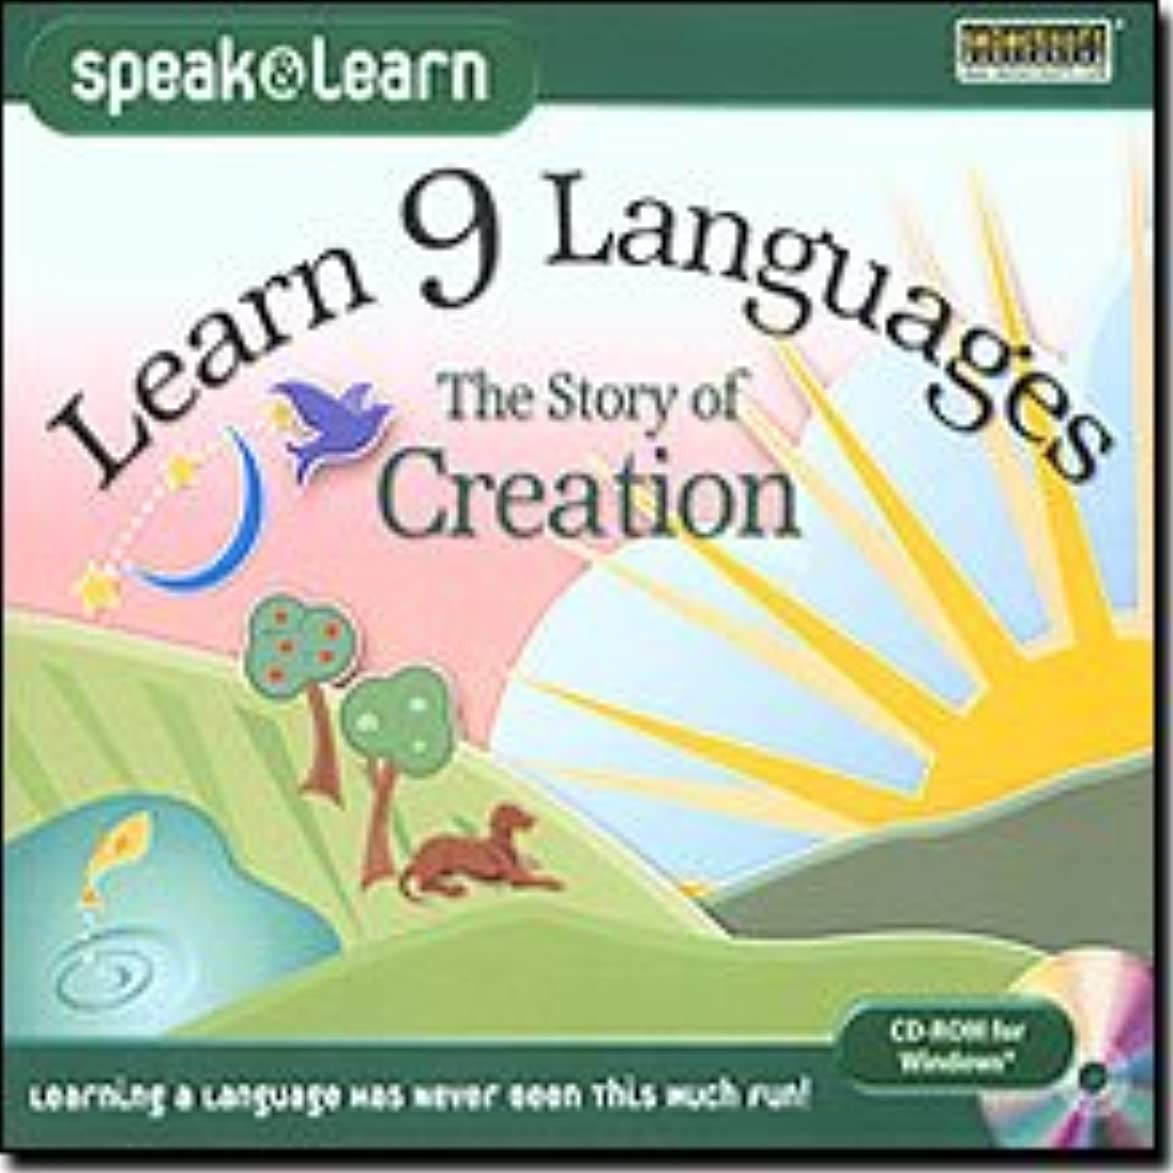 The Best Learn 9 Languages The Story of Creation-LESPL9CREJ - Designed Specially for Beginners. Multilingual stories in English, Spanish, French, German, Italian, Portuguese, Japanese, Korean, and Chinese. Reading and listening to stories can be one of the best and easiest ways to learn a new language. With Speak & Learn, you can practice reading and listening skills, learn new vocabulary and even customize your own language drills. Choose from English, Spanish, French, Ge